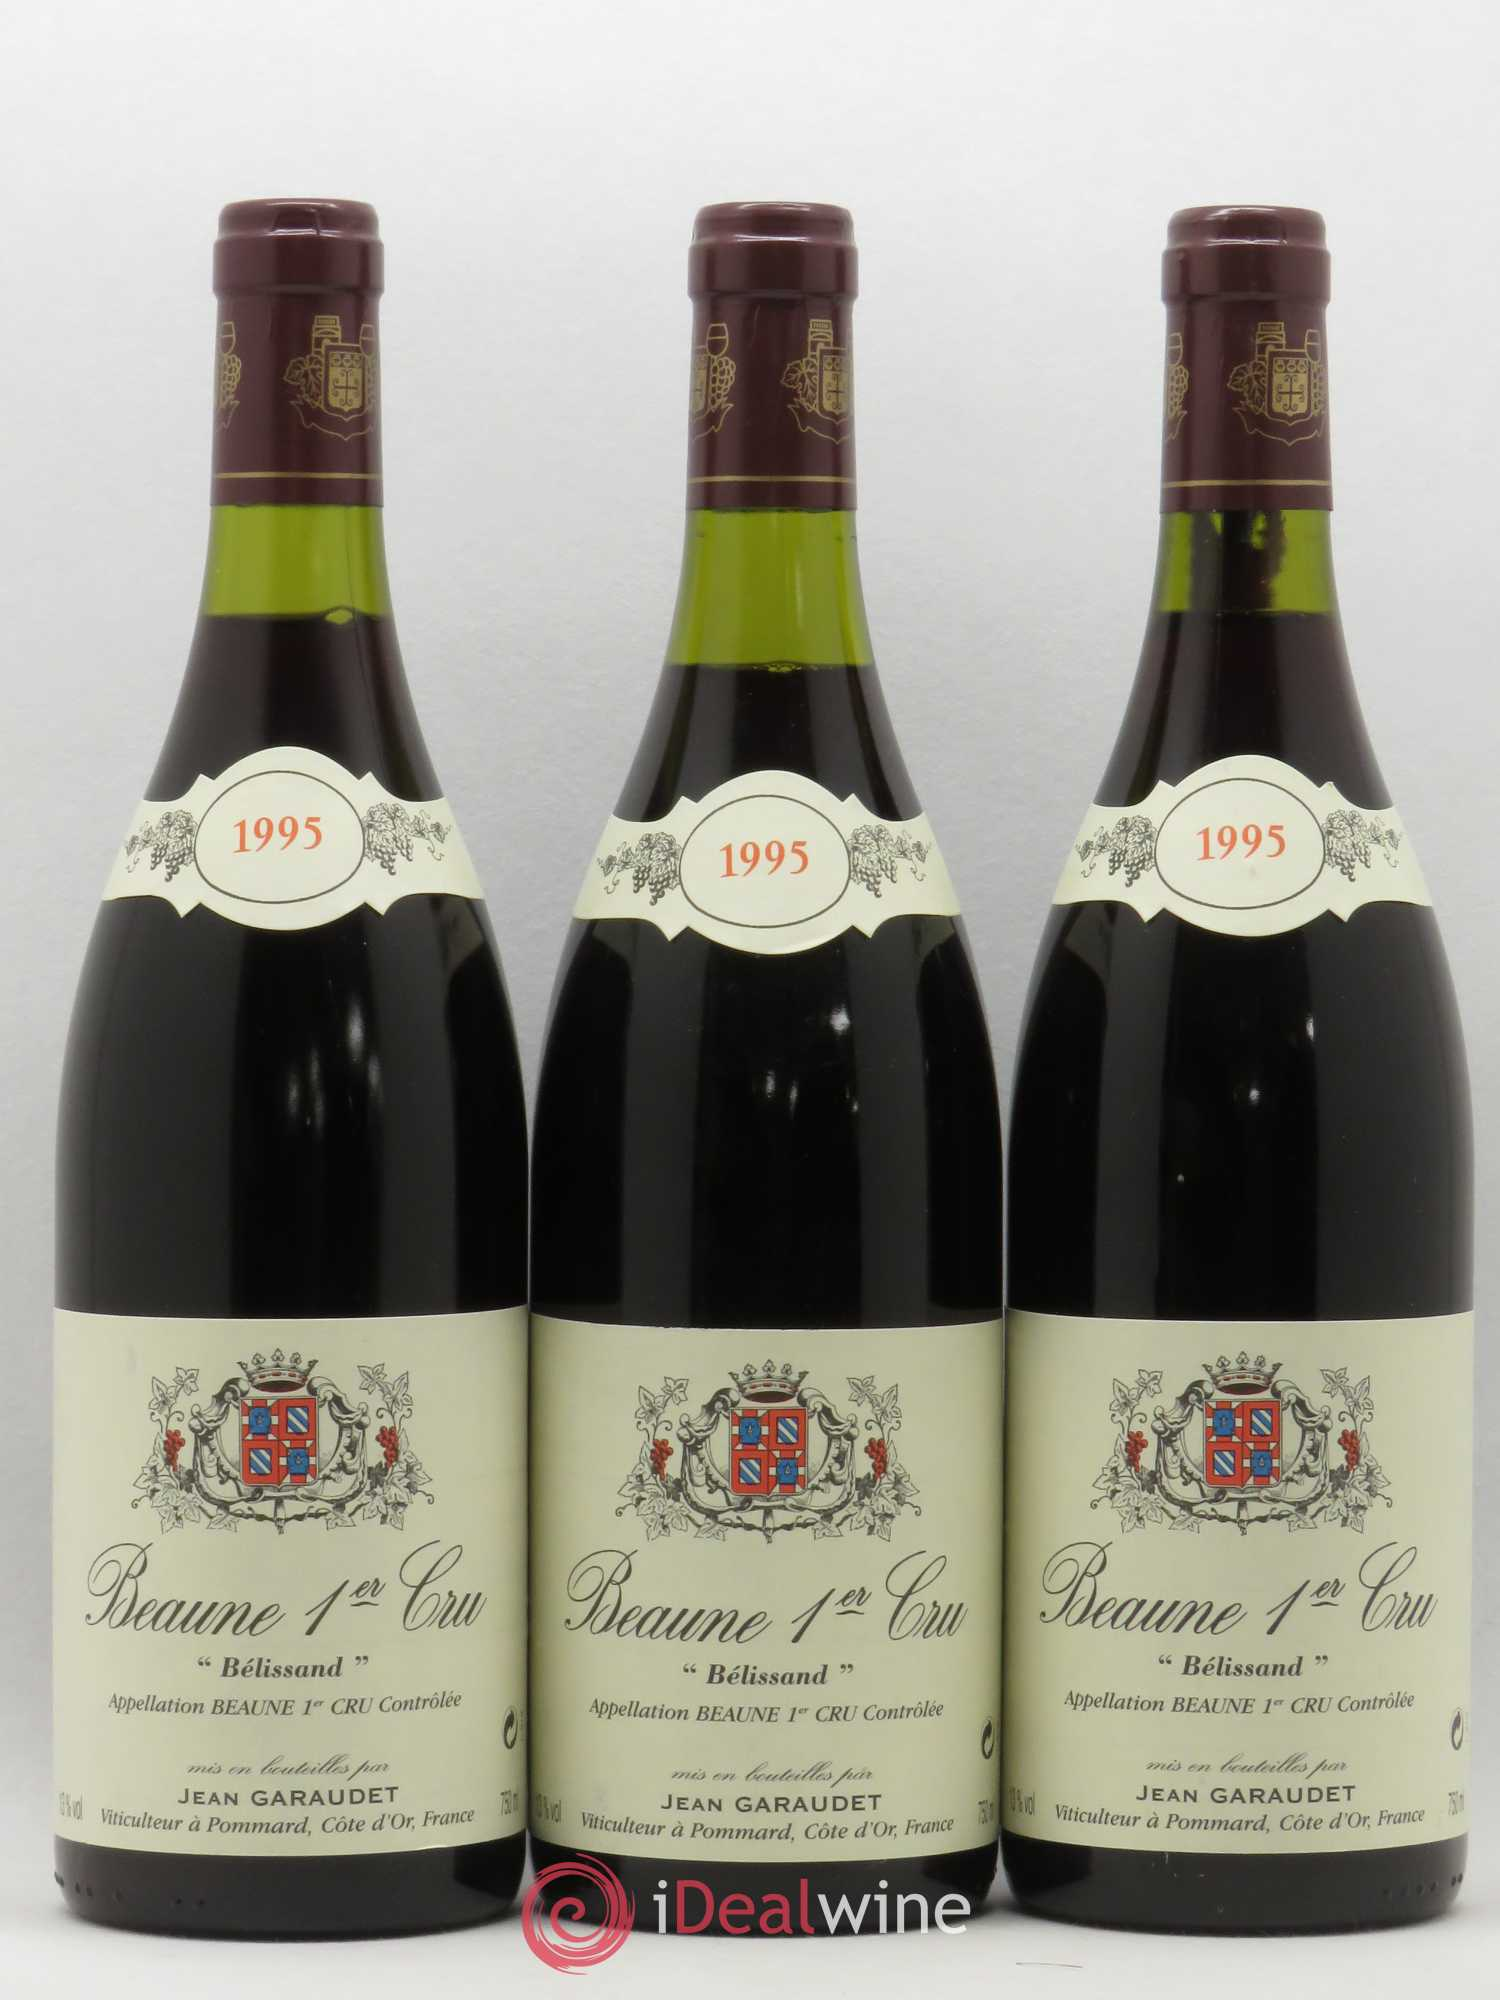 Beaune 1er Cru Belissand Domaine Jean Garaudet 1995 - Lot of 3 Bottles